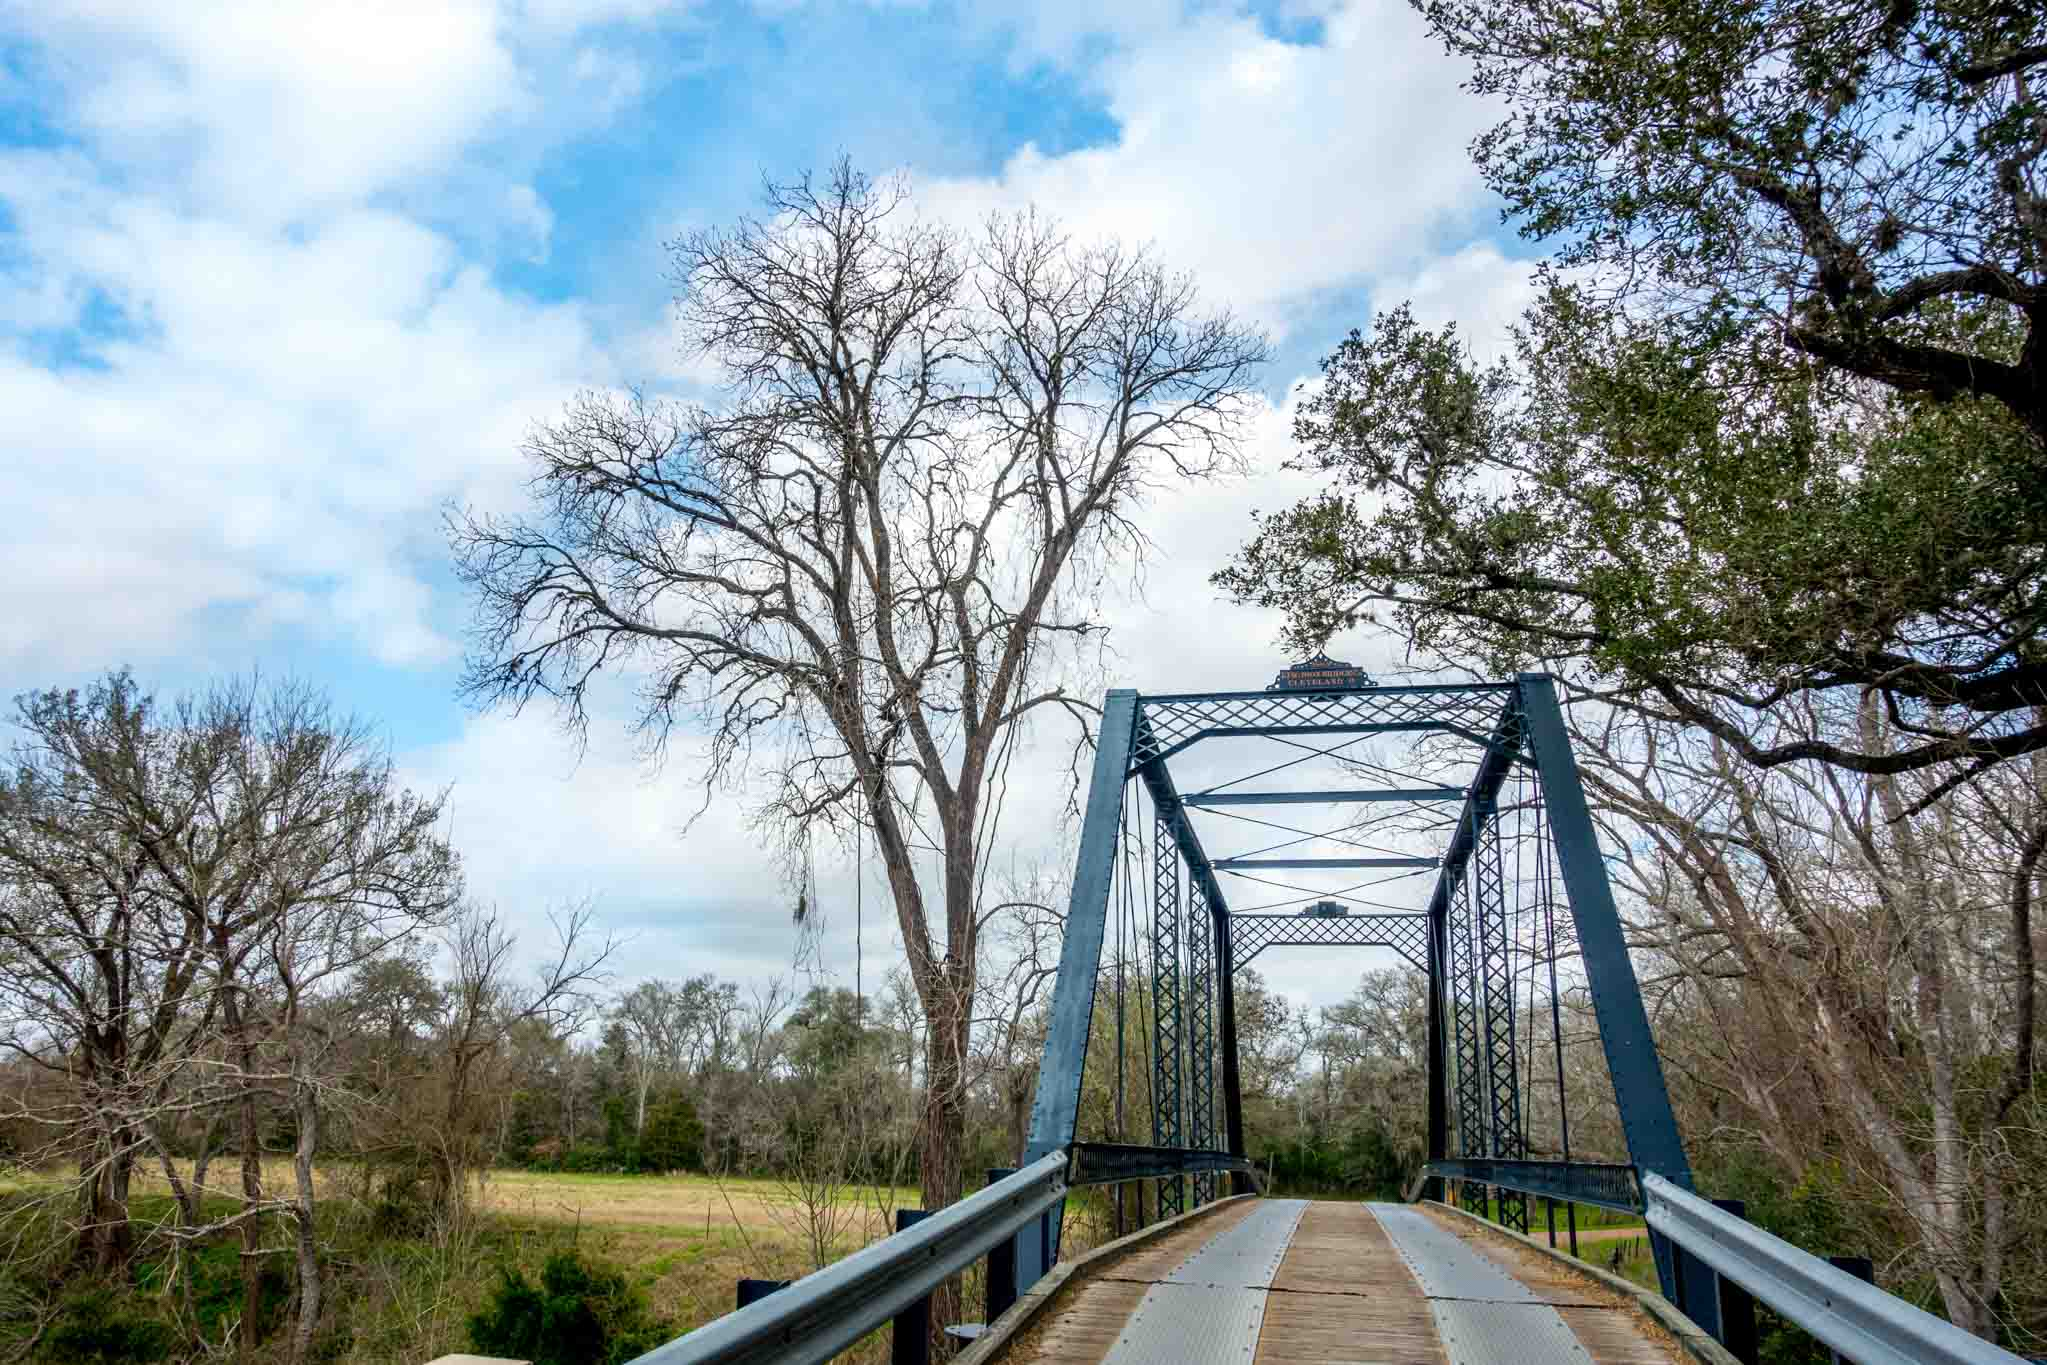 The Piano Bridge in Dubina TX is one of the only remaining iron bridges in the United States